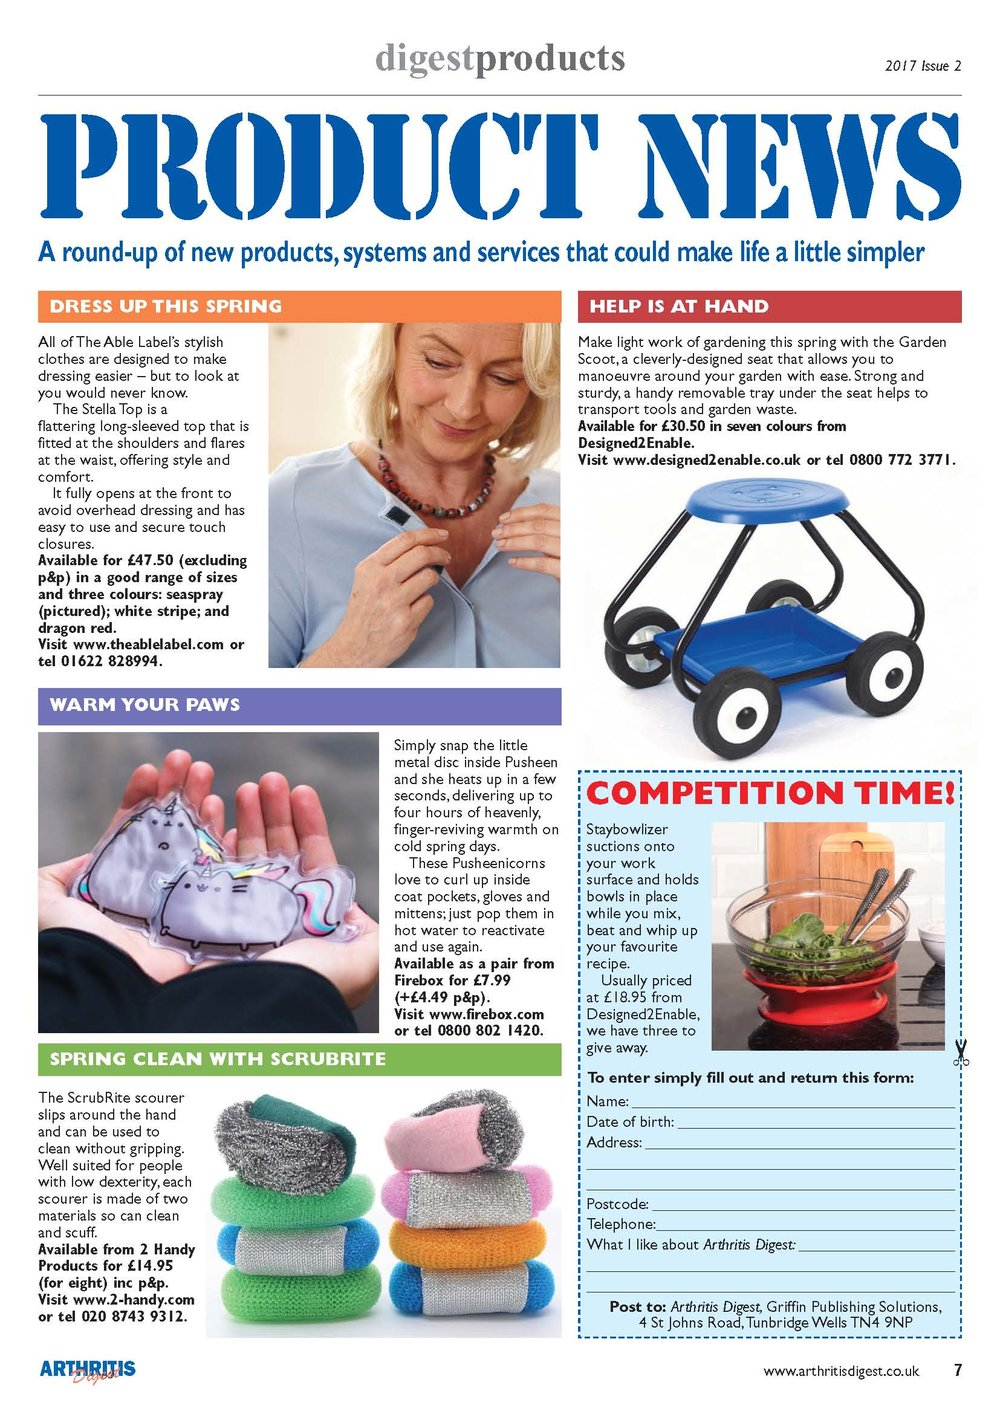 'ScrubRite' featuring in the March edition of Arthritis Digest